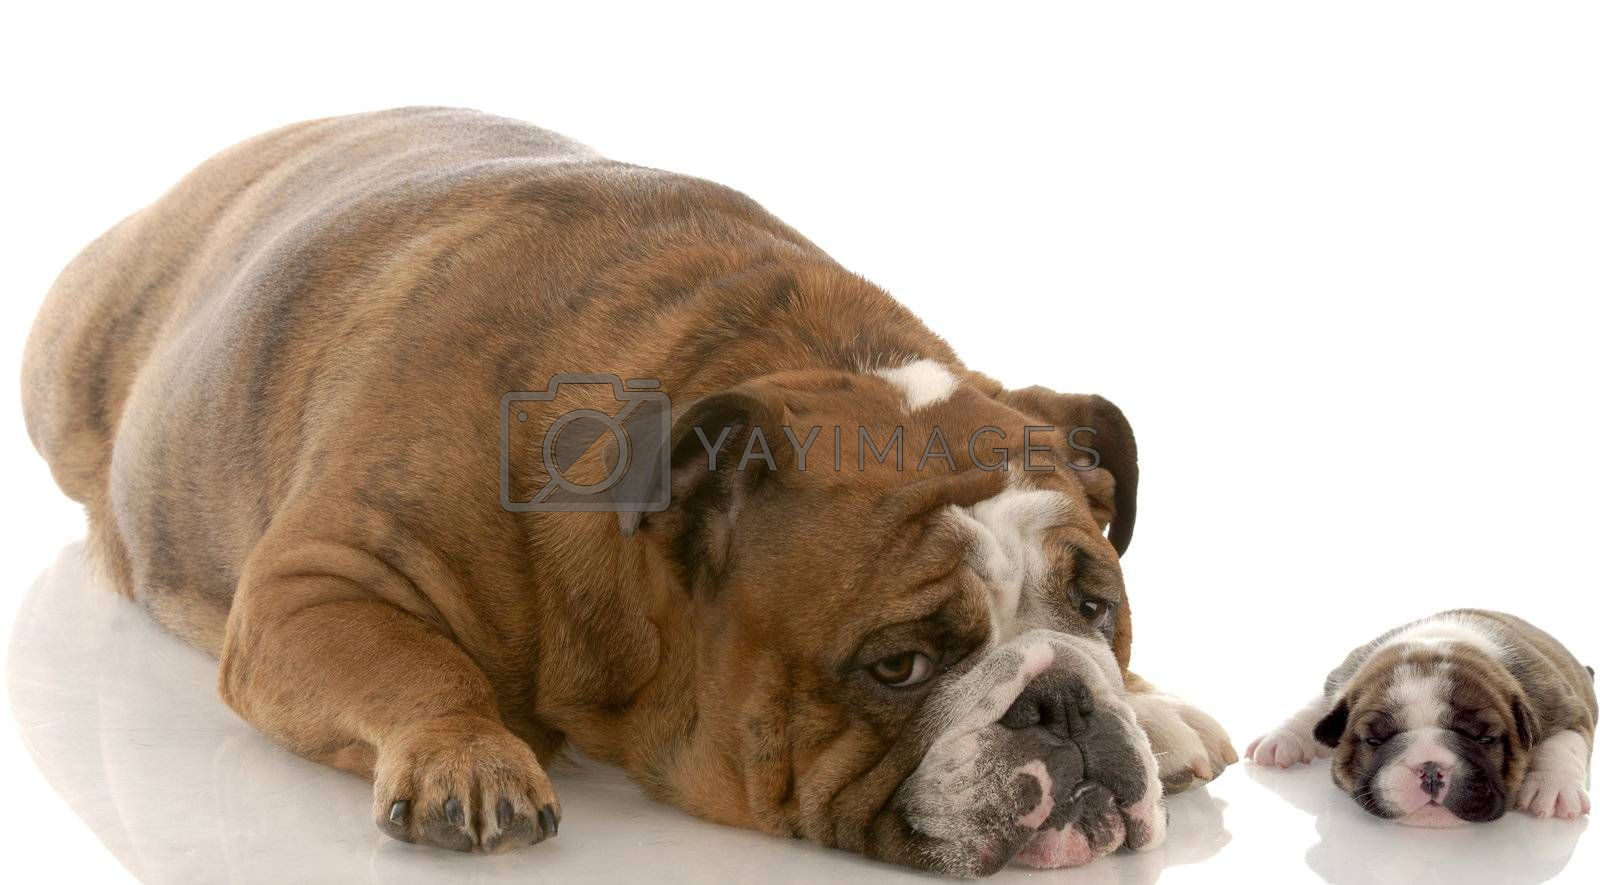 english bulldog mother and three week old puppy with reflection on white background